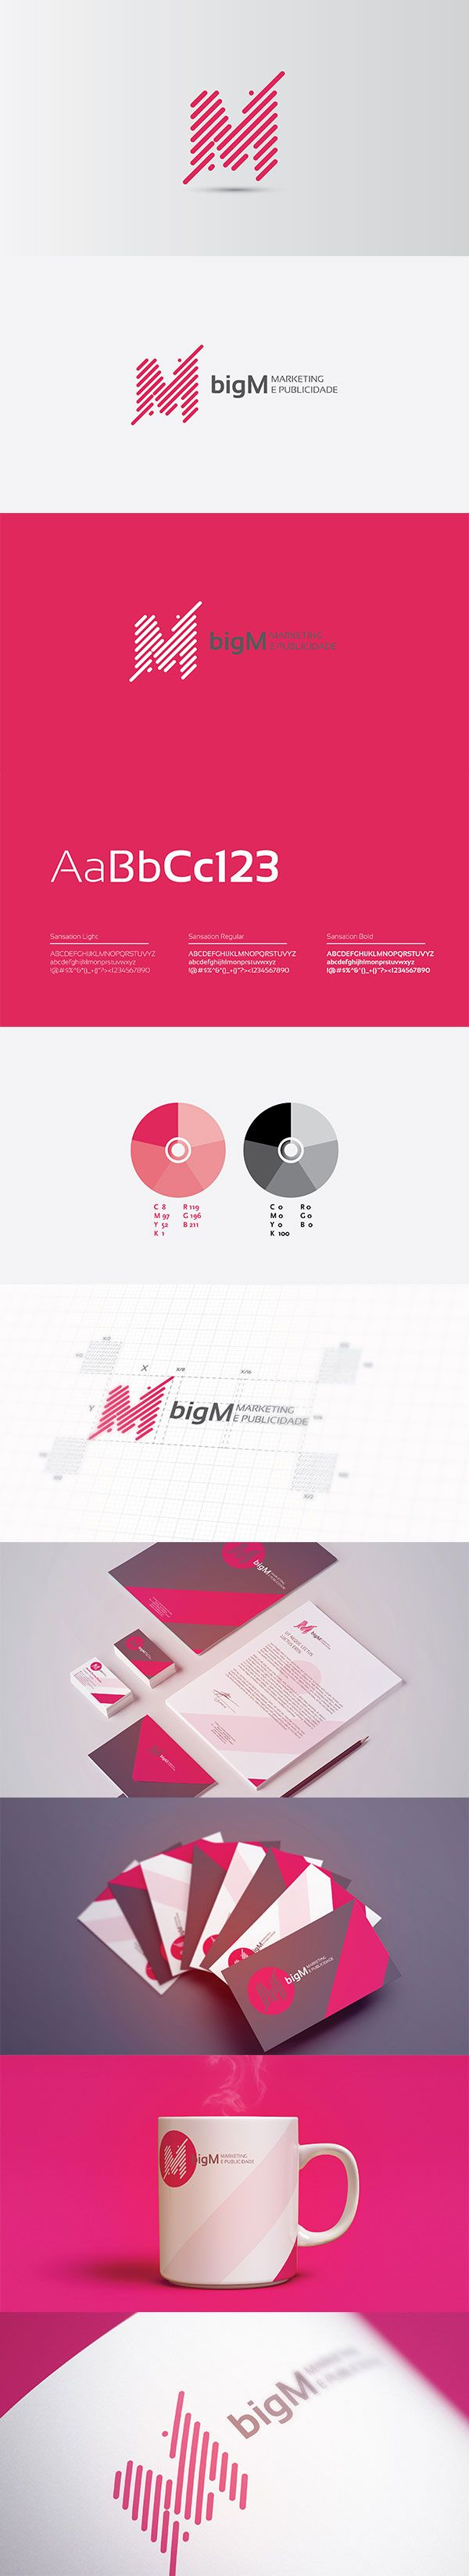 """bigM is a small advertising agency based in Maputo - Mozambique. NSV Design was in charge of suggesting the name of the agency as well as developing the company's corporate identity. The name of the agency derived from the """"Marketing with big M"""" concept. As well, the logo concept was inspired in the various interconnectivities of the marketing campaigns and their chosen media which help on the development of the brand/products. This is the final artwork developed for bigM.  Enjoy"""